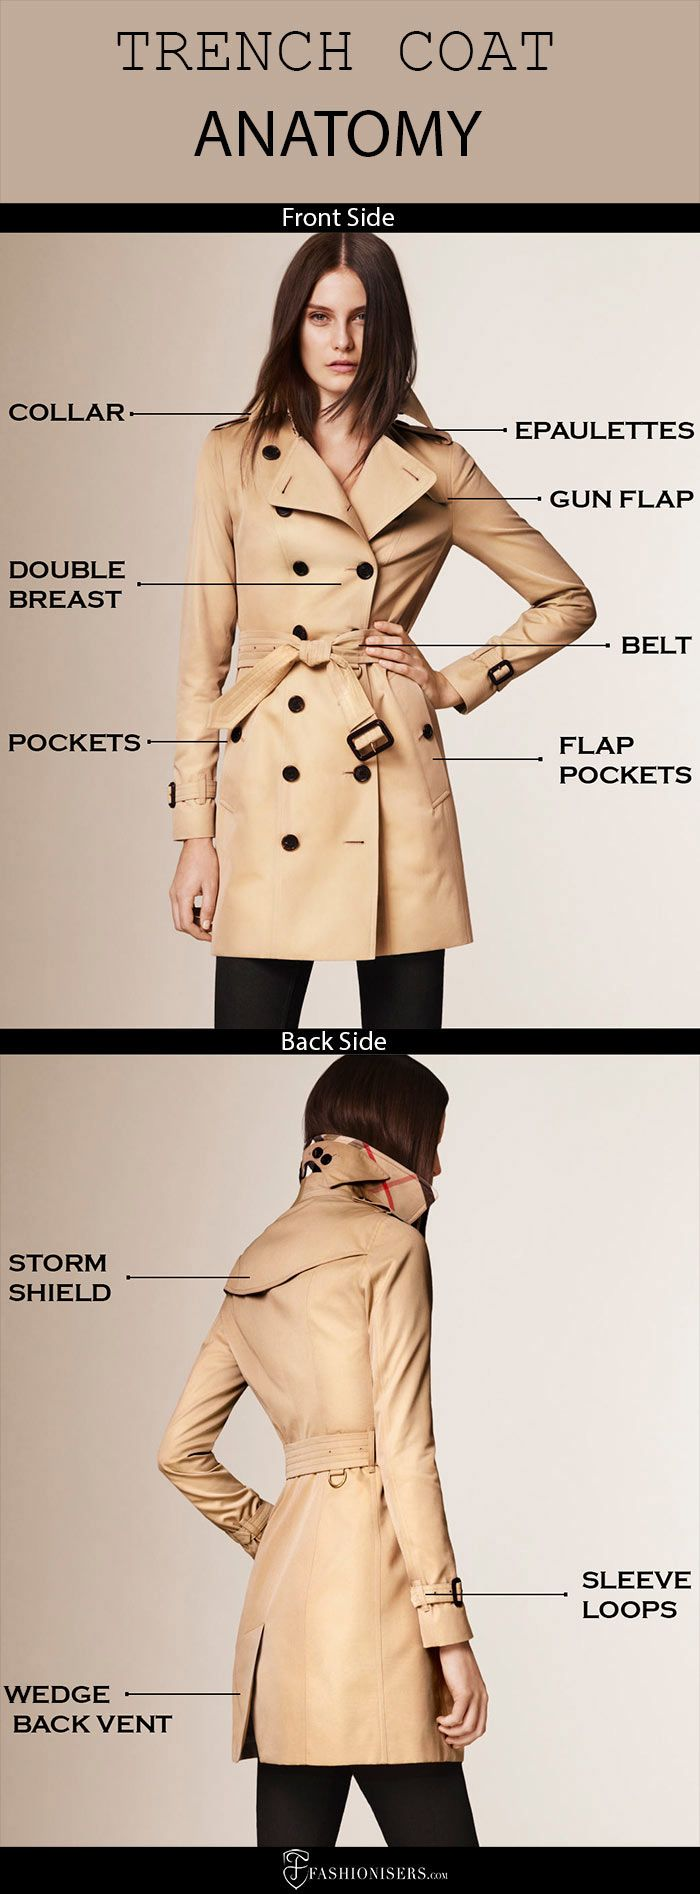 The Anatomy of a Trench Coat: How To Wear It | Kleidung